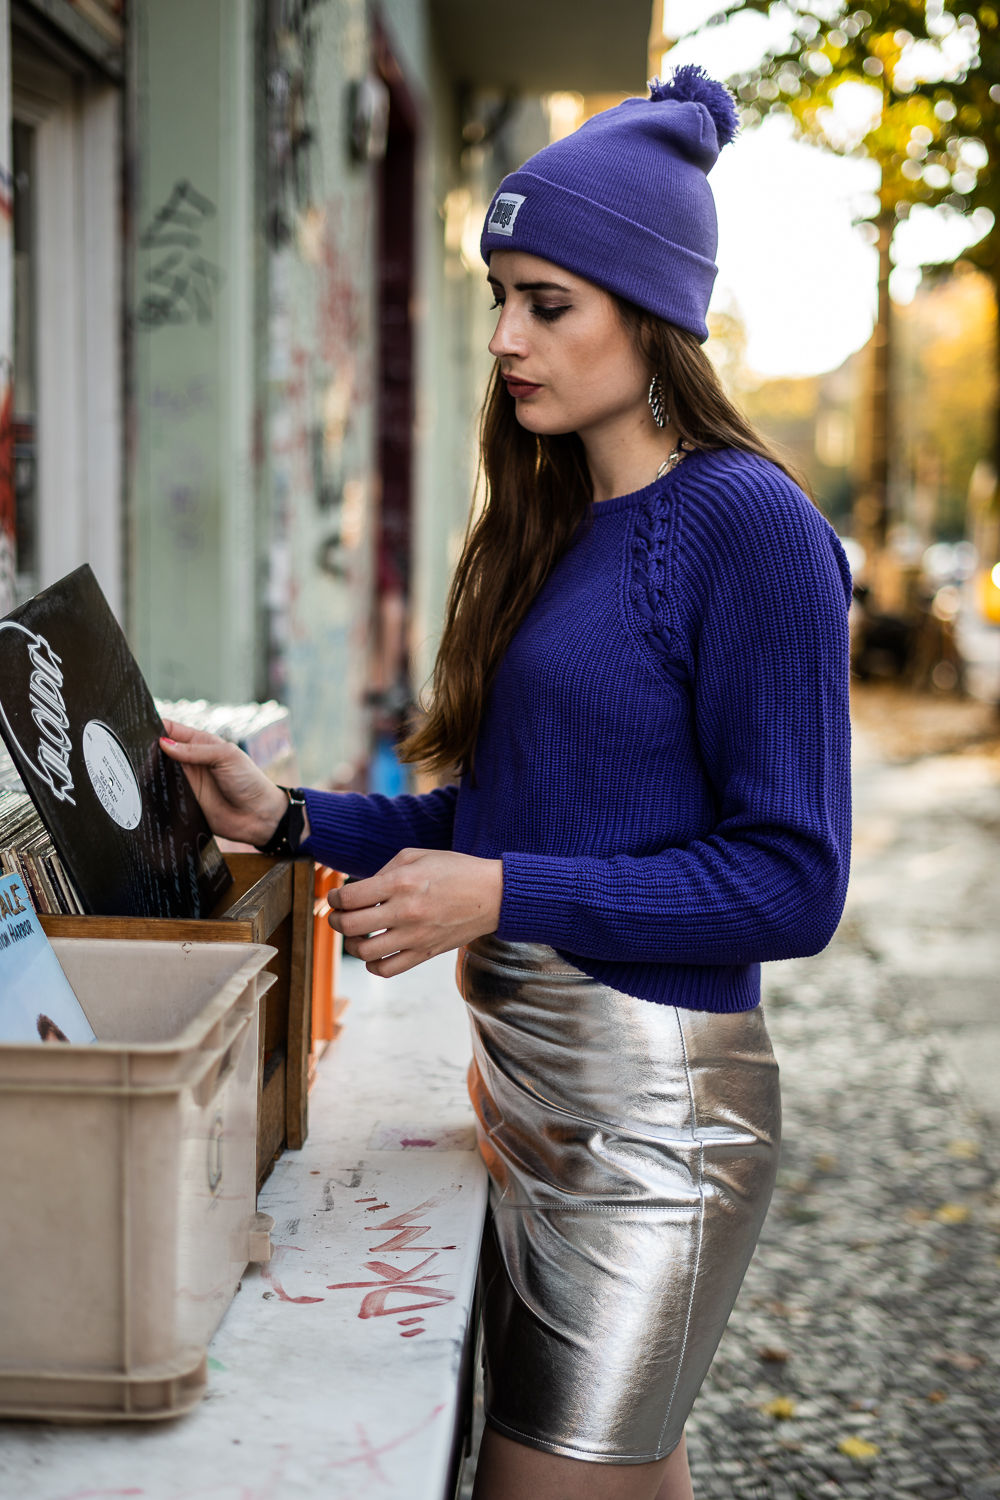 Trendfarbe Lila-Metallic Rock mit Pullover-Modeblog Berlin-Fashionblogger Herbstoutfit-andysparkles